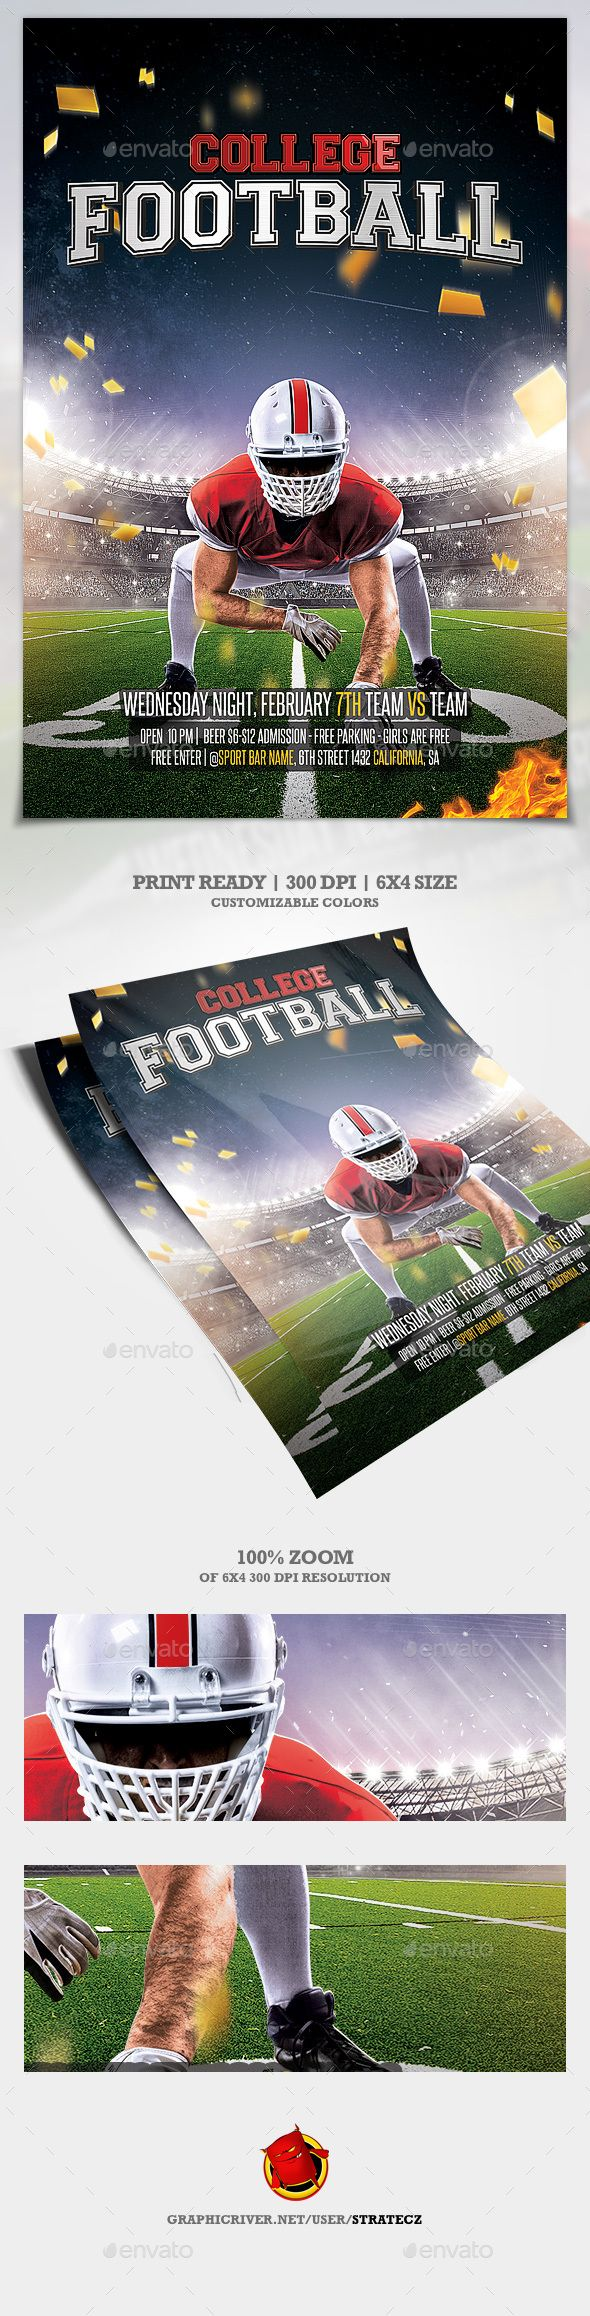 College Football / American Football Flyer — Photoshop PSD #american football #super bowl l • Download ➝ https://graphicriver.net/item/college-football-american-football-flyer/19567899?ref=pxcr